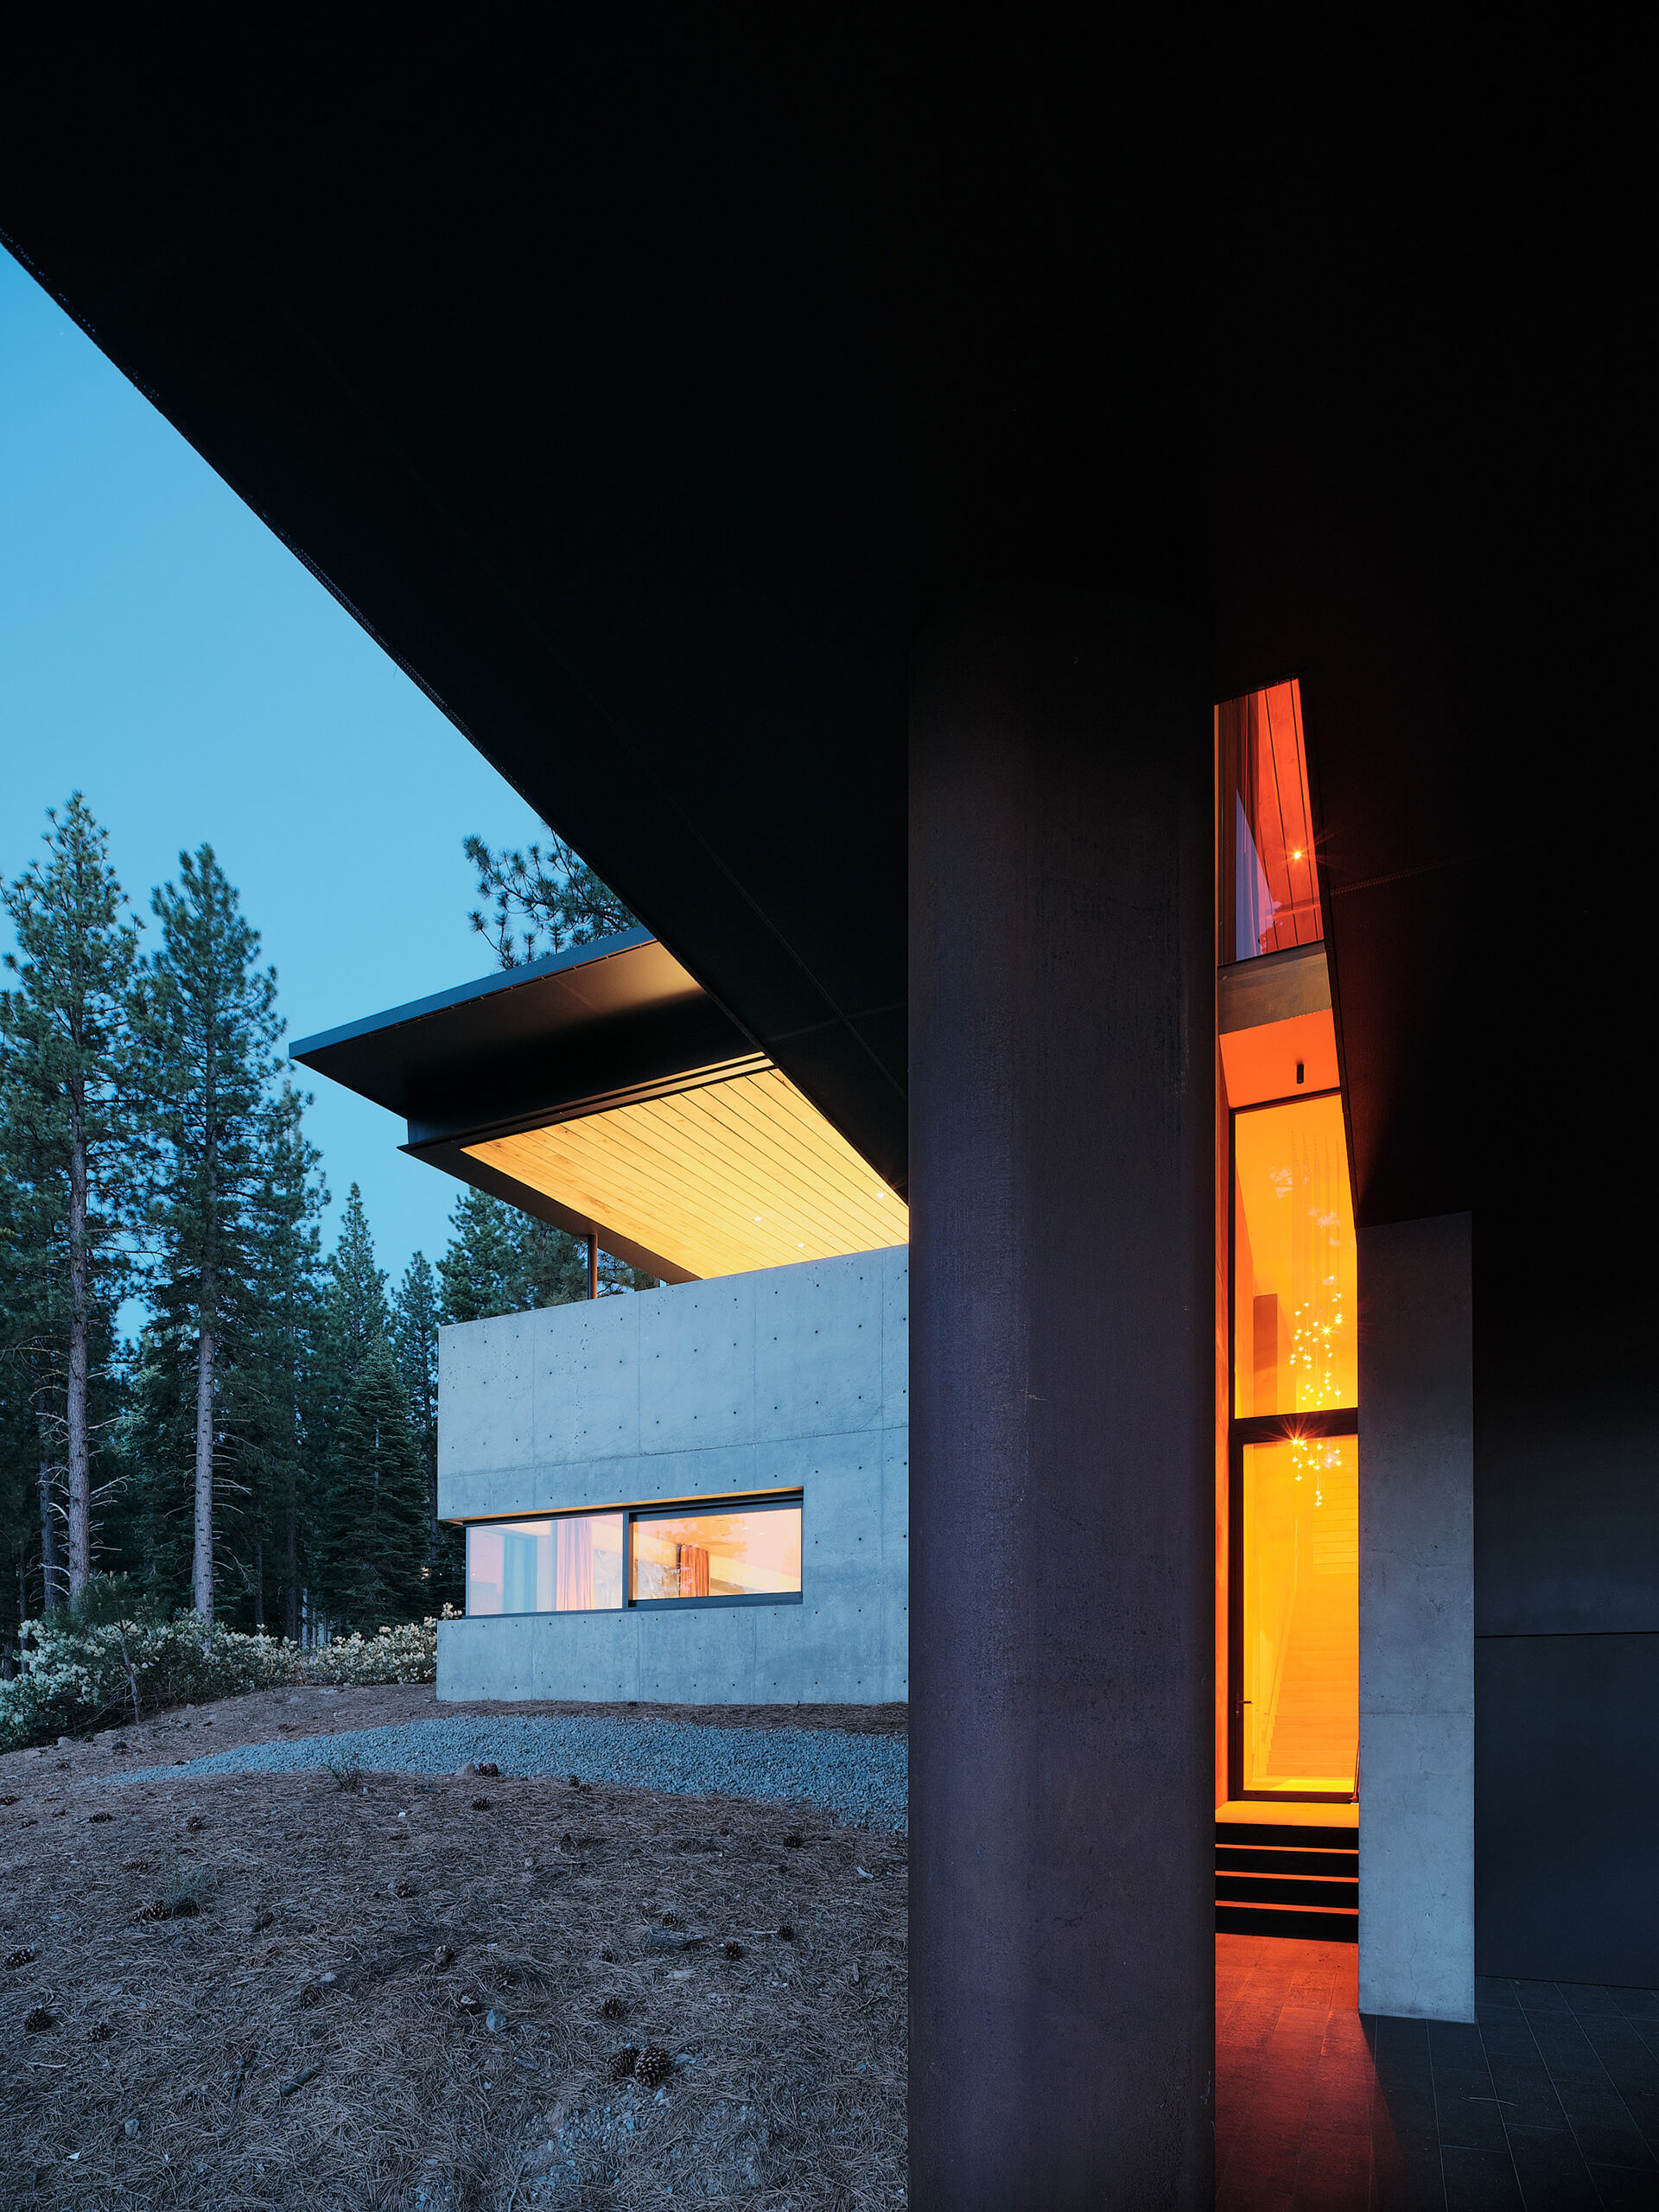 The orange-red glass fixed at the entrance | Lookout House by Faulkner Architects | STIRworld